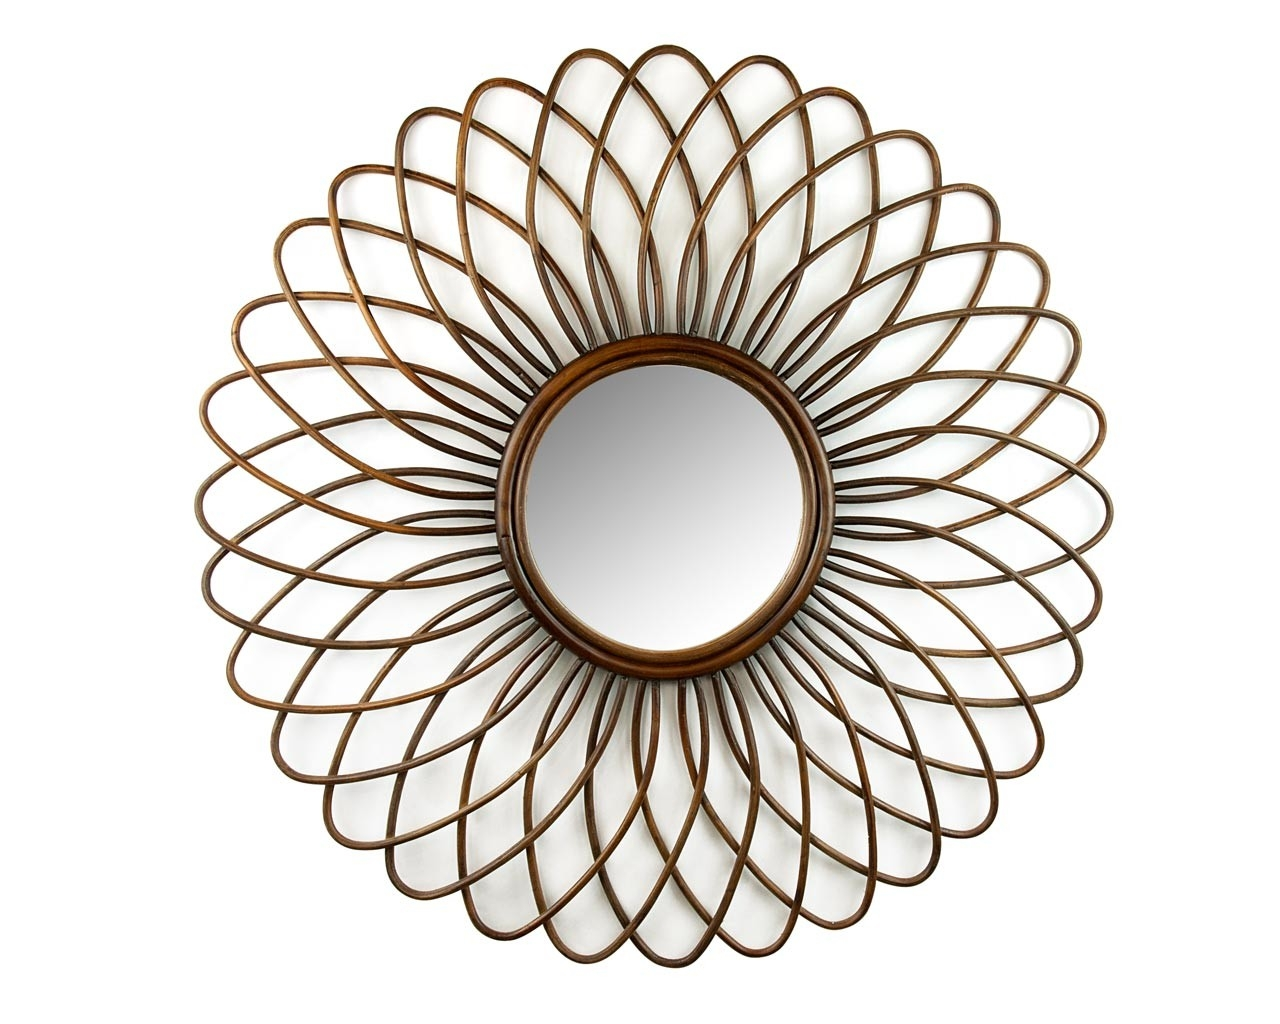 Rattan Ornate Round Mirror Handcrafted Feature Mirrors Inside Ornate Round Mirror (Image 8 of 15)